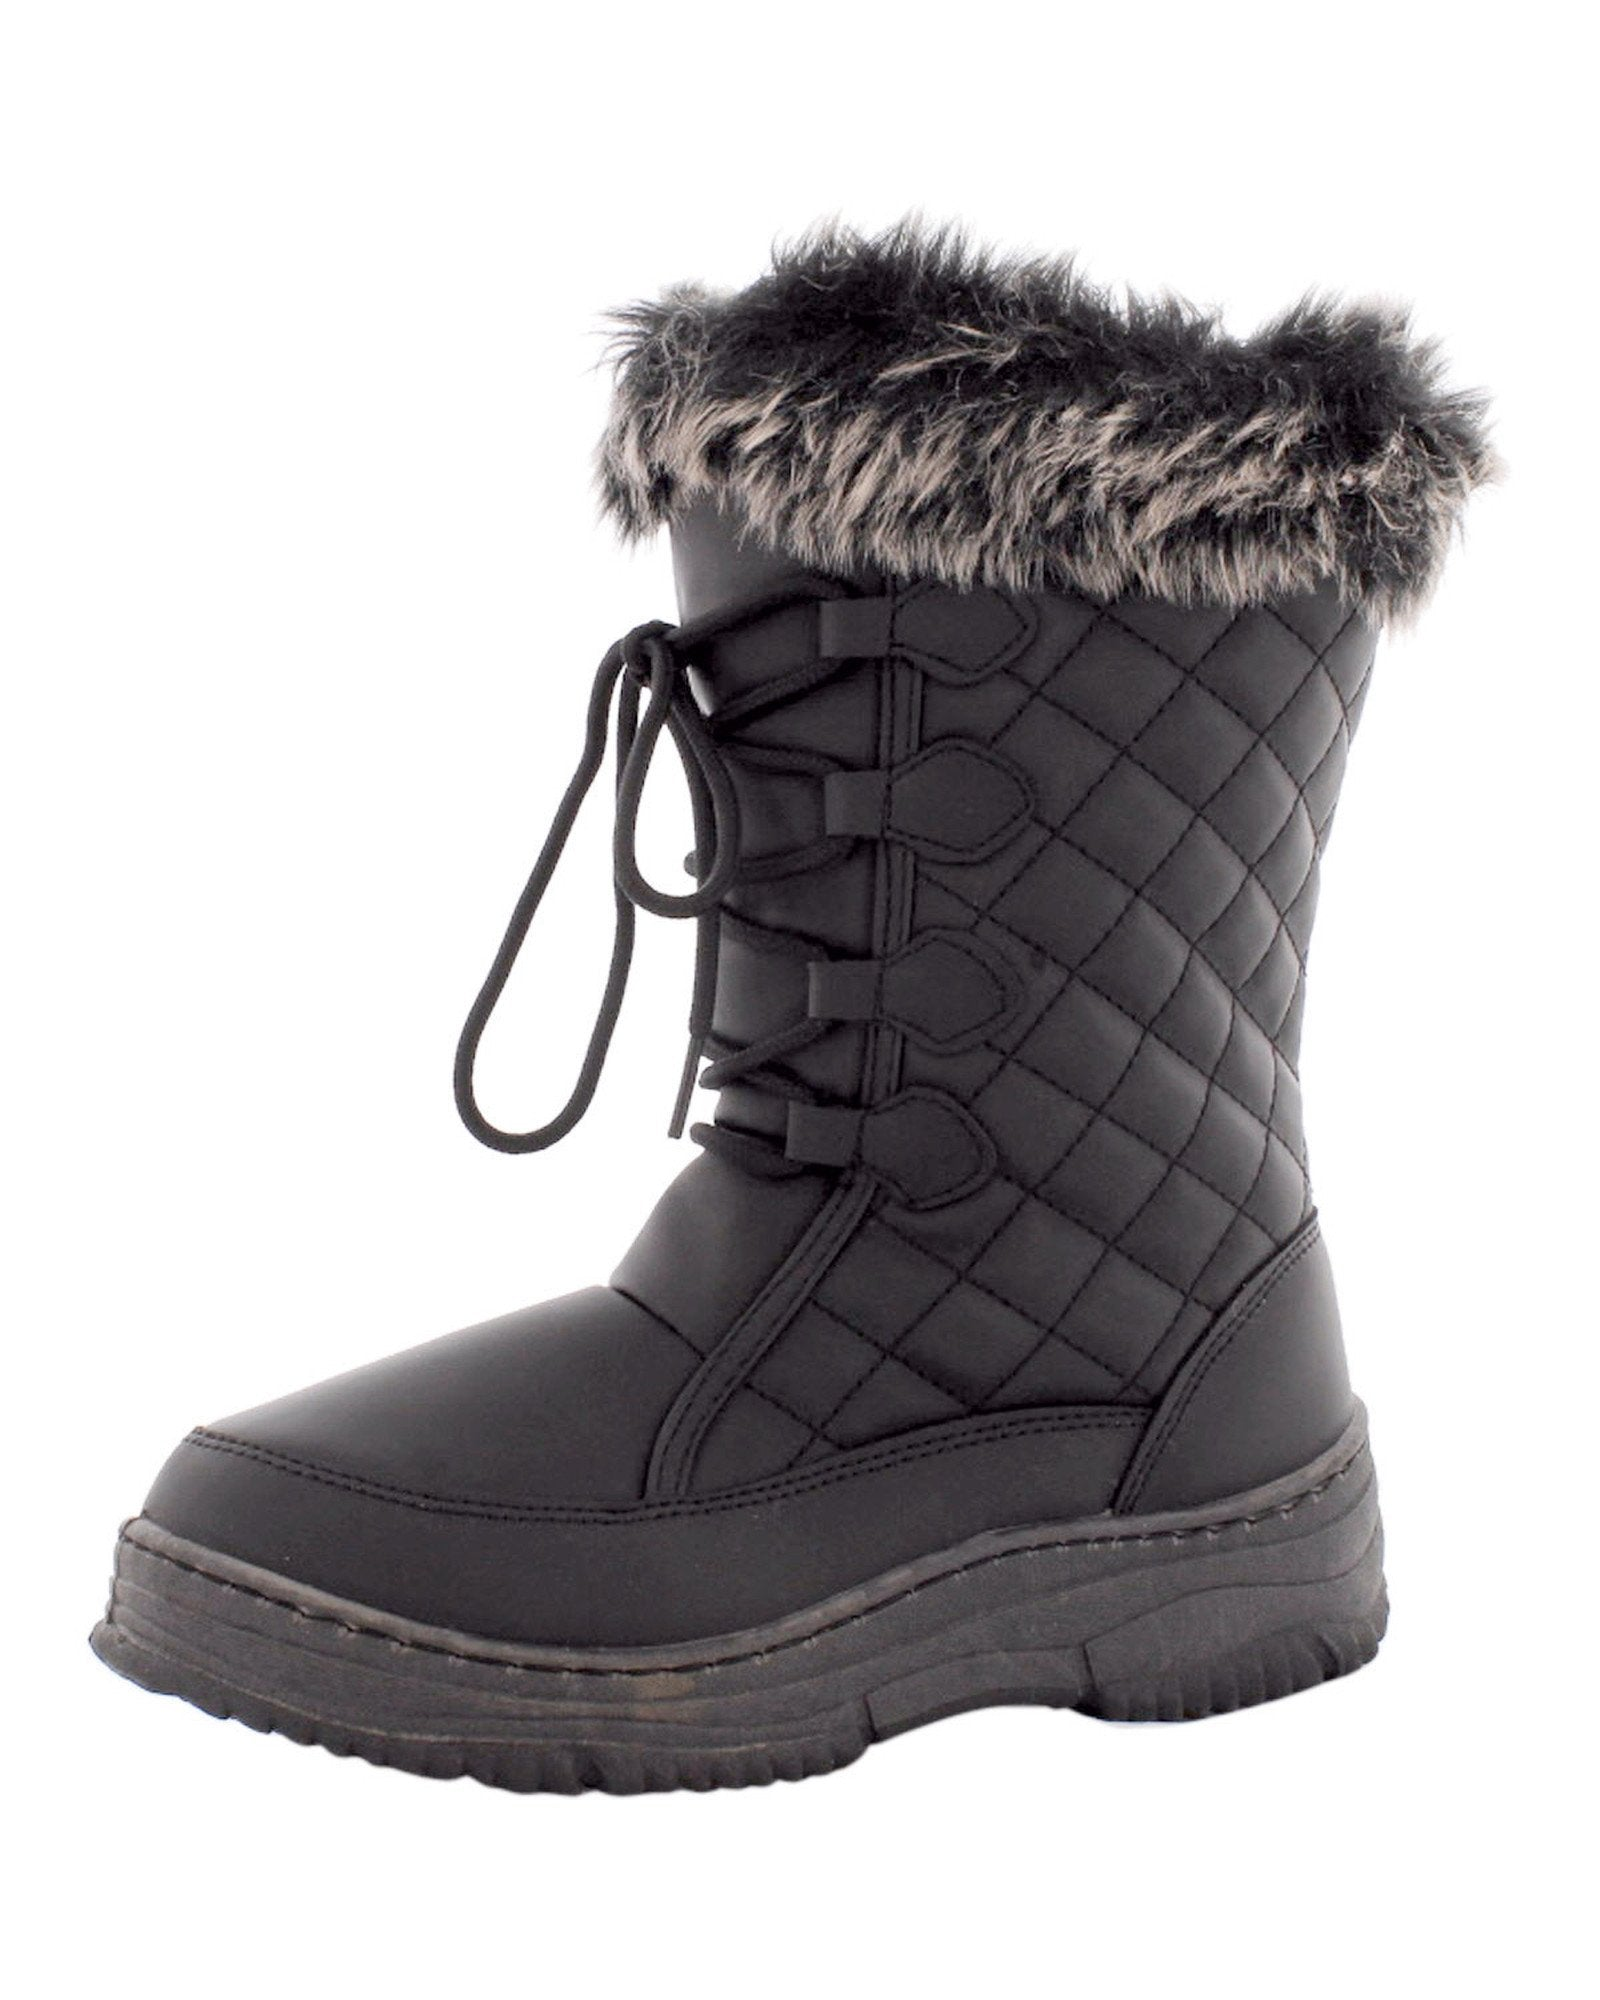 Anna Almeida - Women's Quilted Snow Boot- Black - V.I.M. - 5